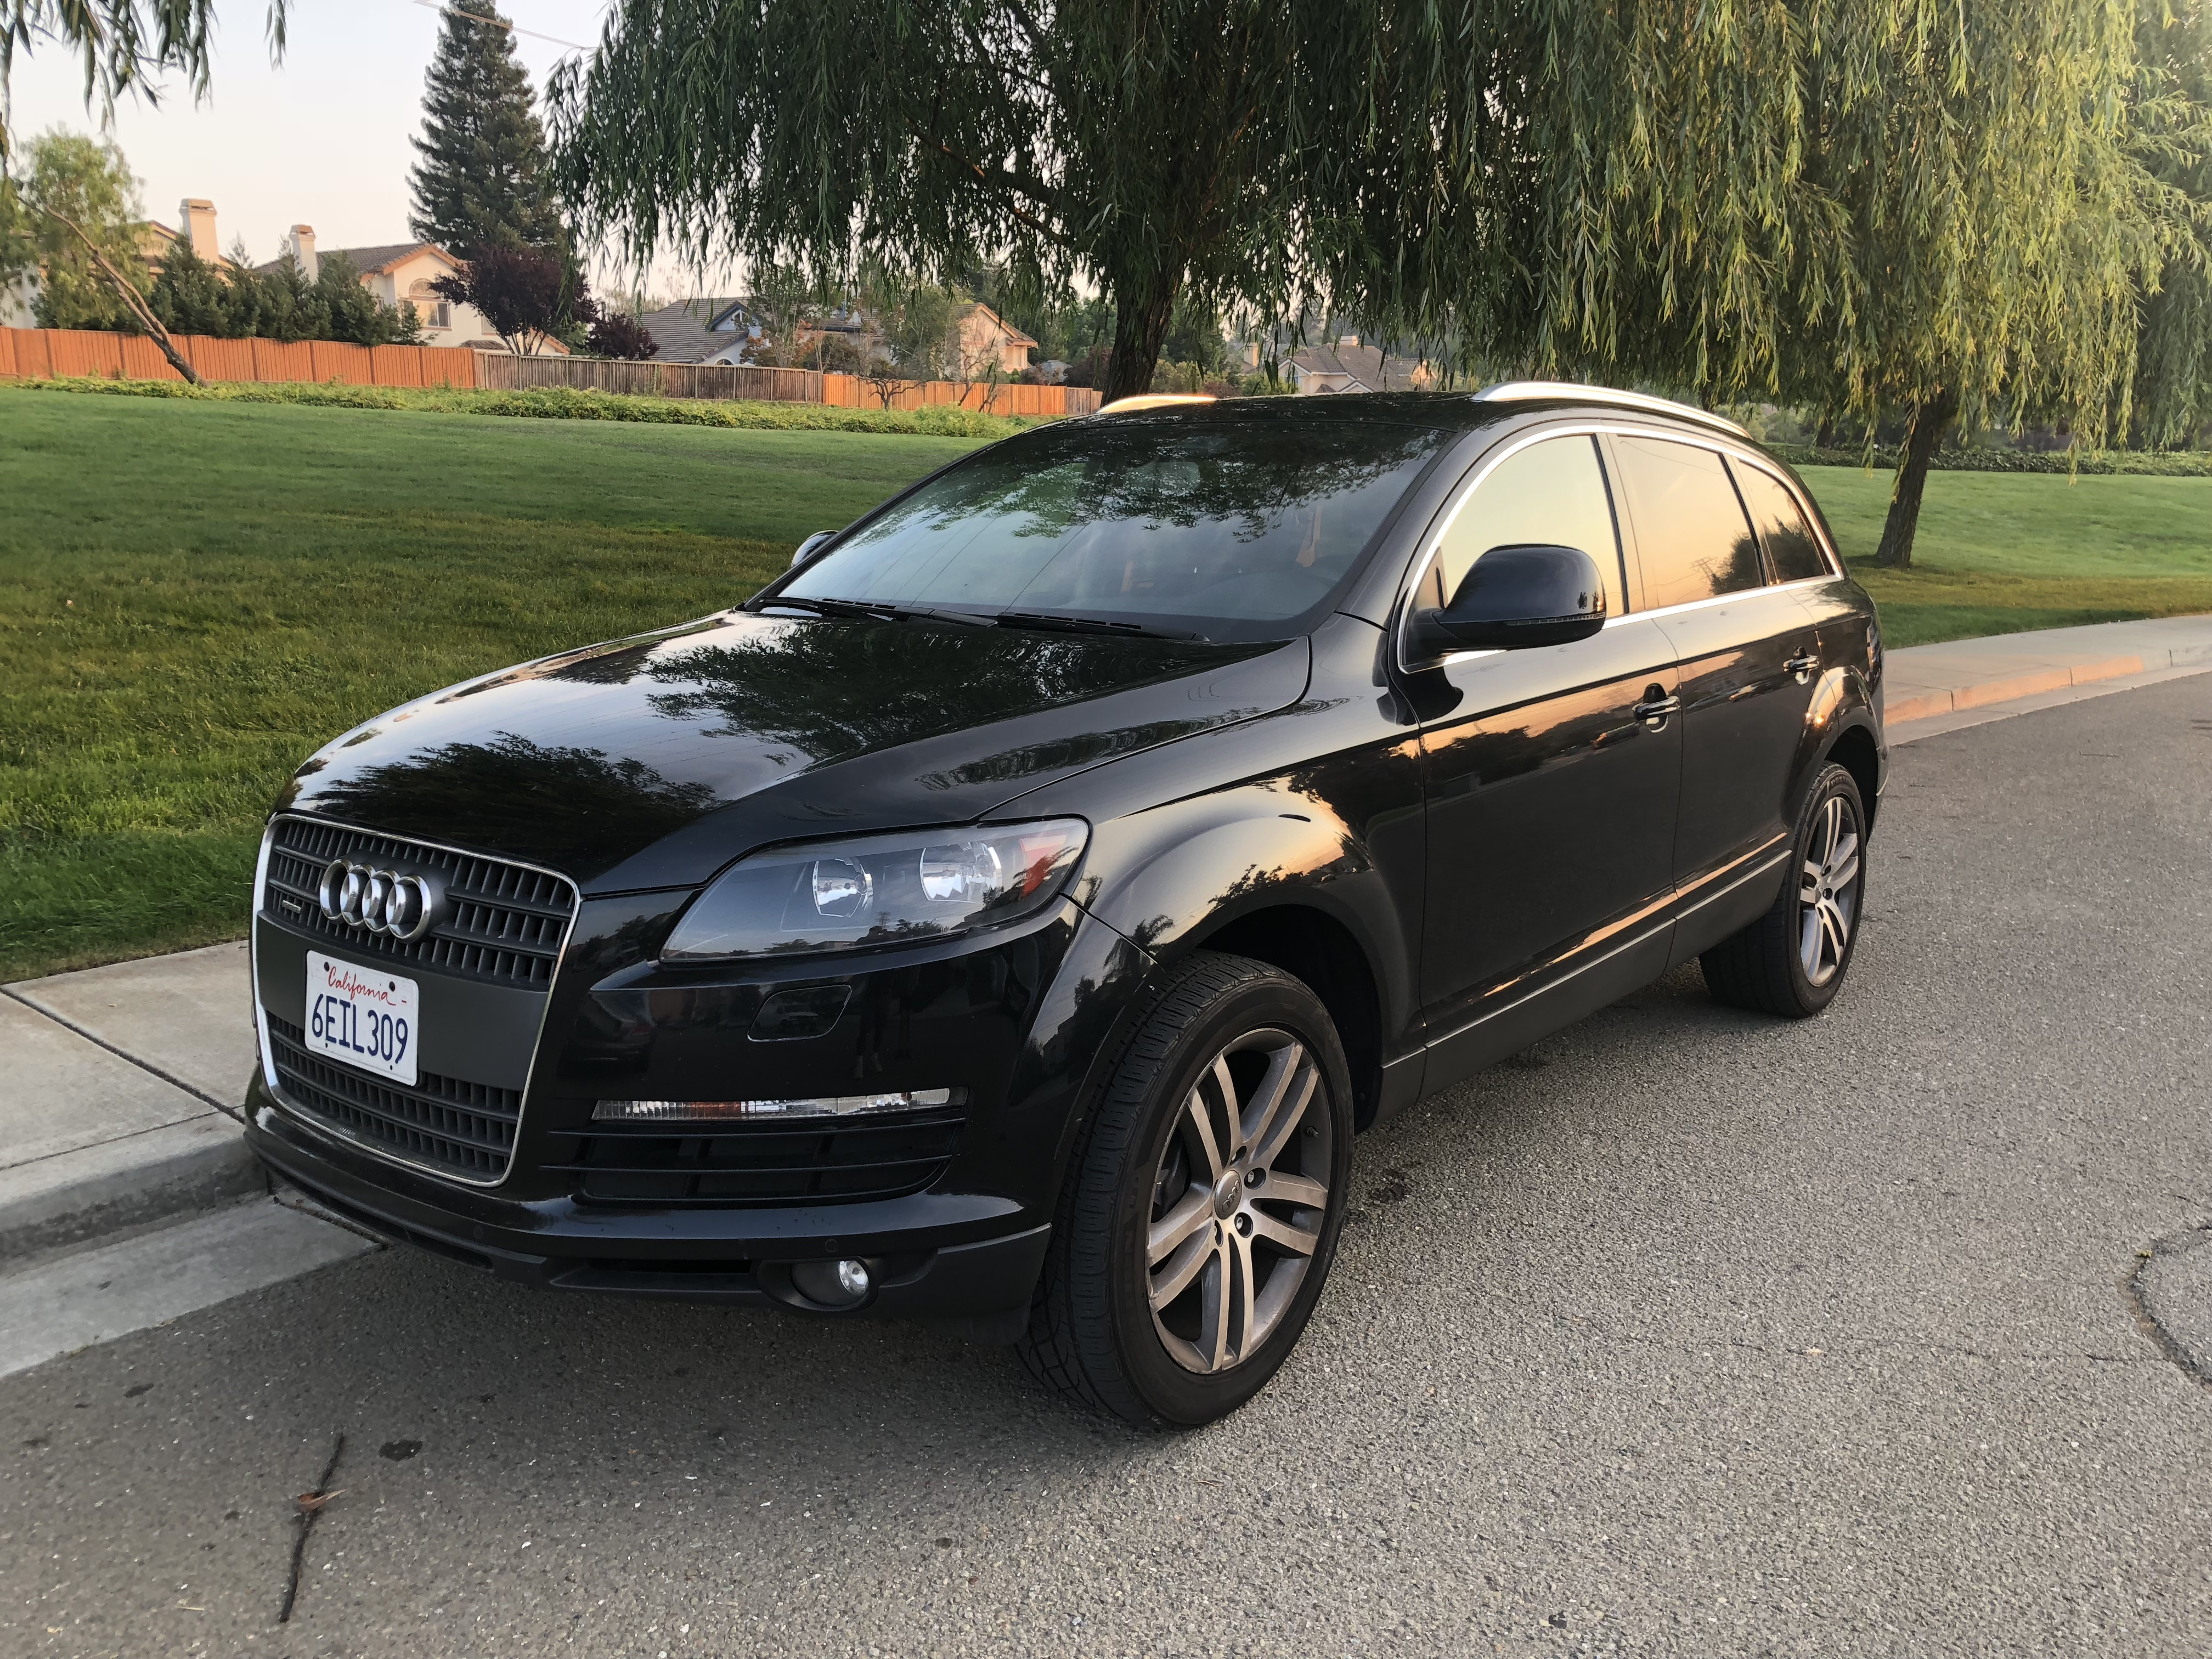 Used 2008 Audi Q7 For Sale in Fremont CA